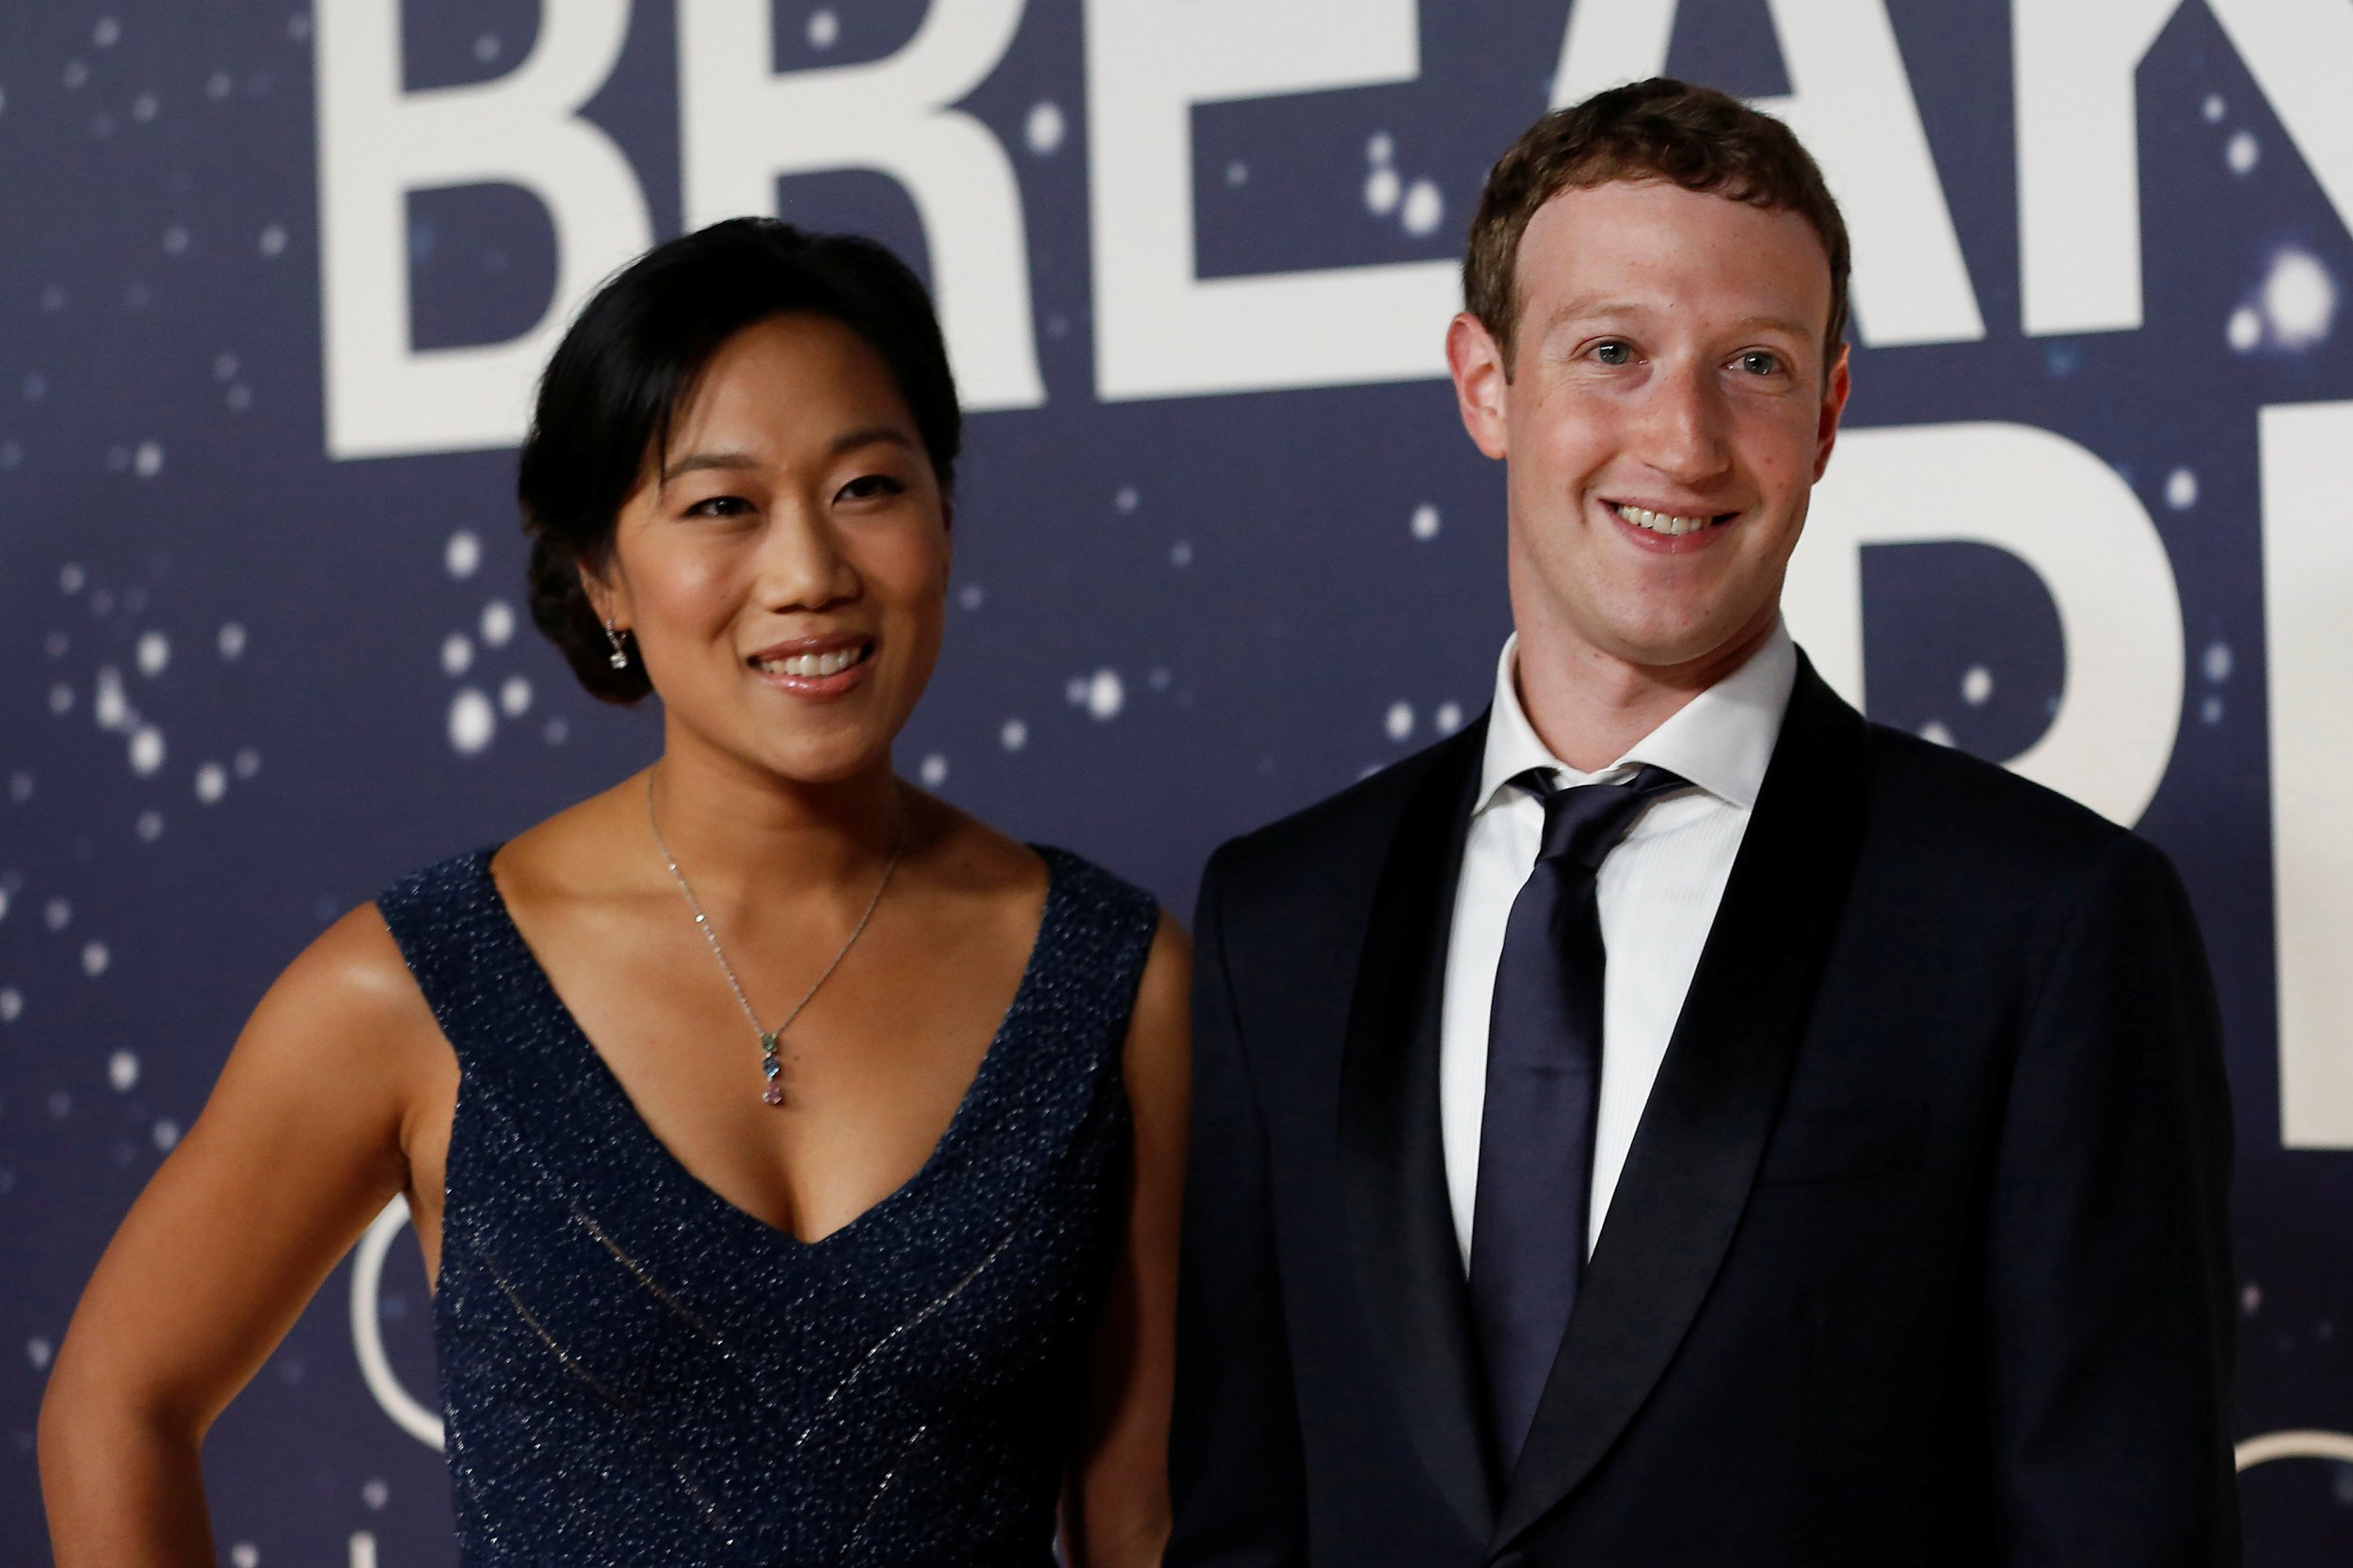 FILE PHOTO: Mark Zuckerberg (R), founder and CEO of Facebook, and wife Priscilla Chan arrive on the red carpet during the 2nd annual Breakthrough Prize Award in Mountain View, California November 9, 2014. REUTERS/Stephen Lam/File Photo